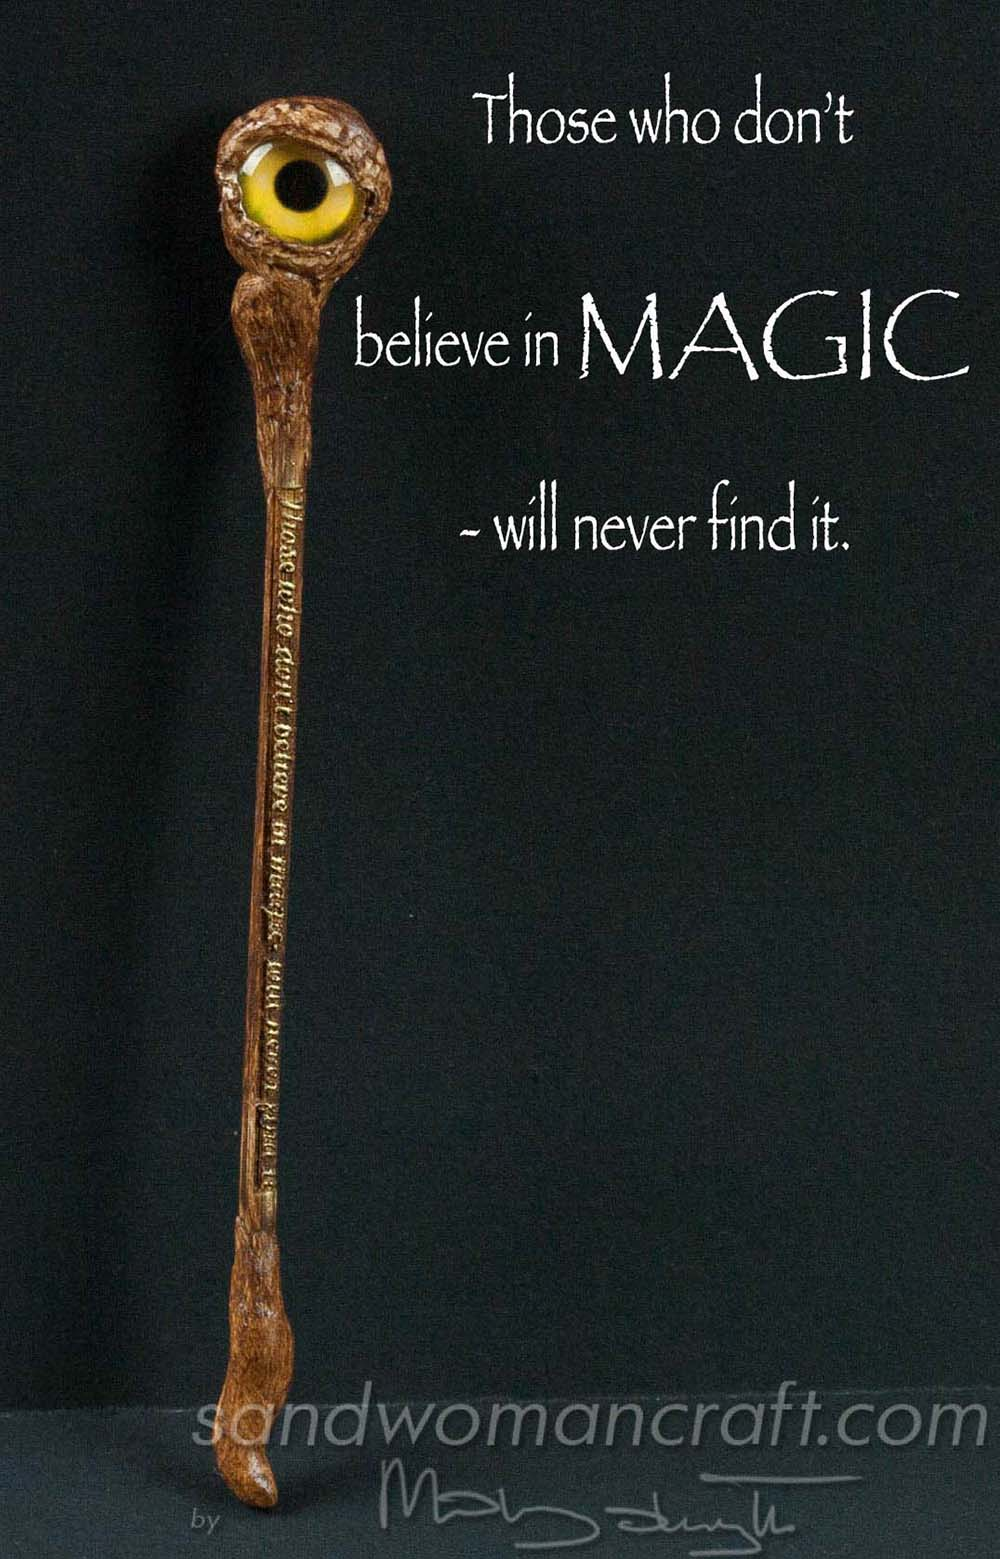 Miniature wizard's walking stick